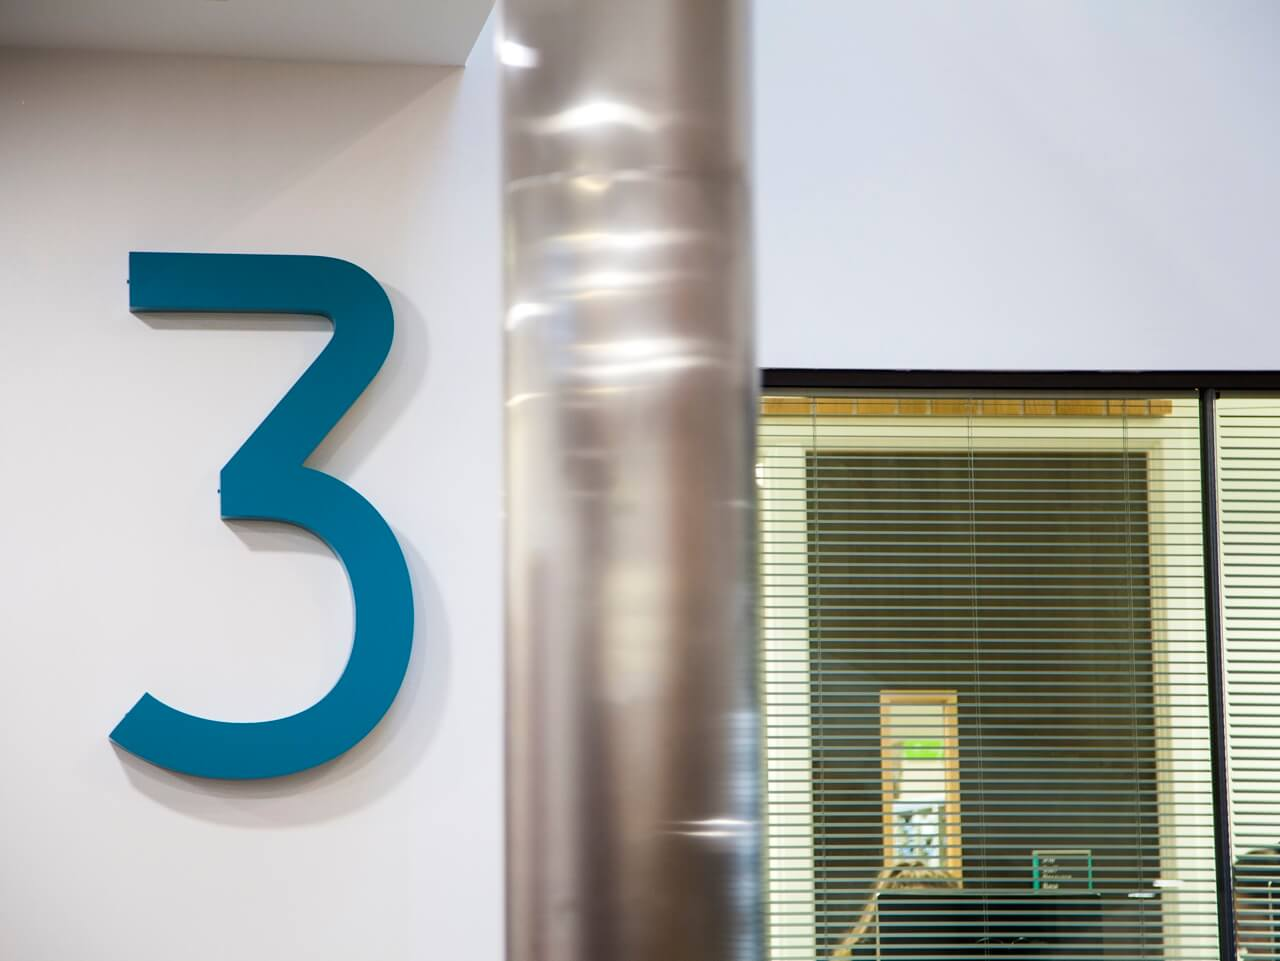 3D signage and wayfinding at Rochdale Sixth Form College